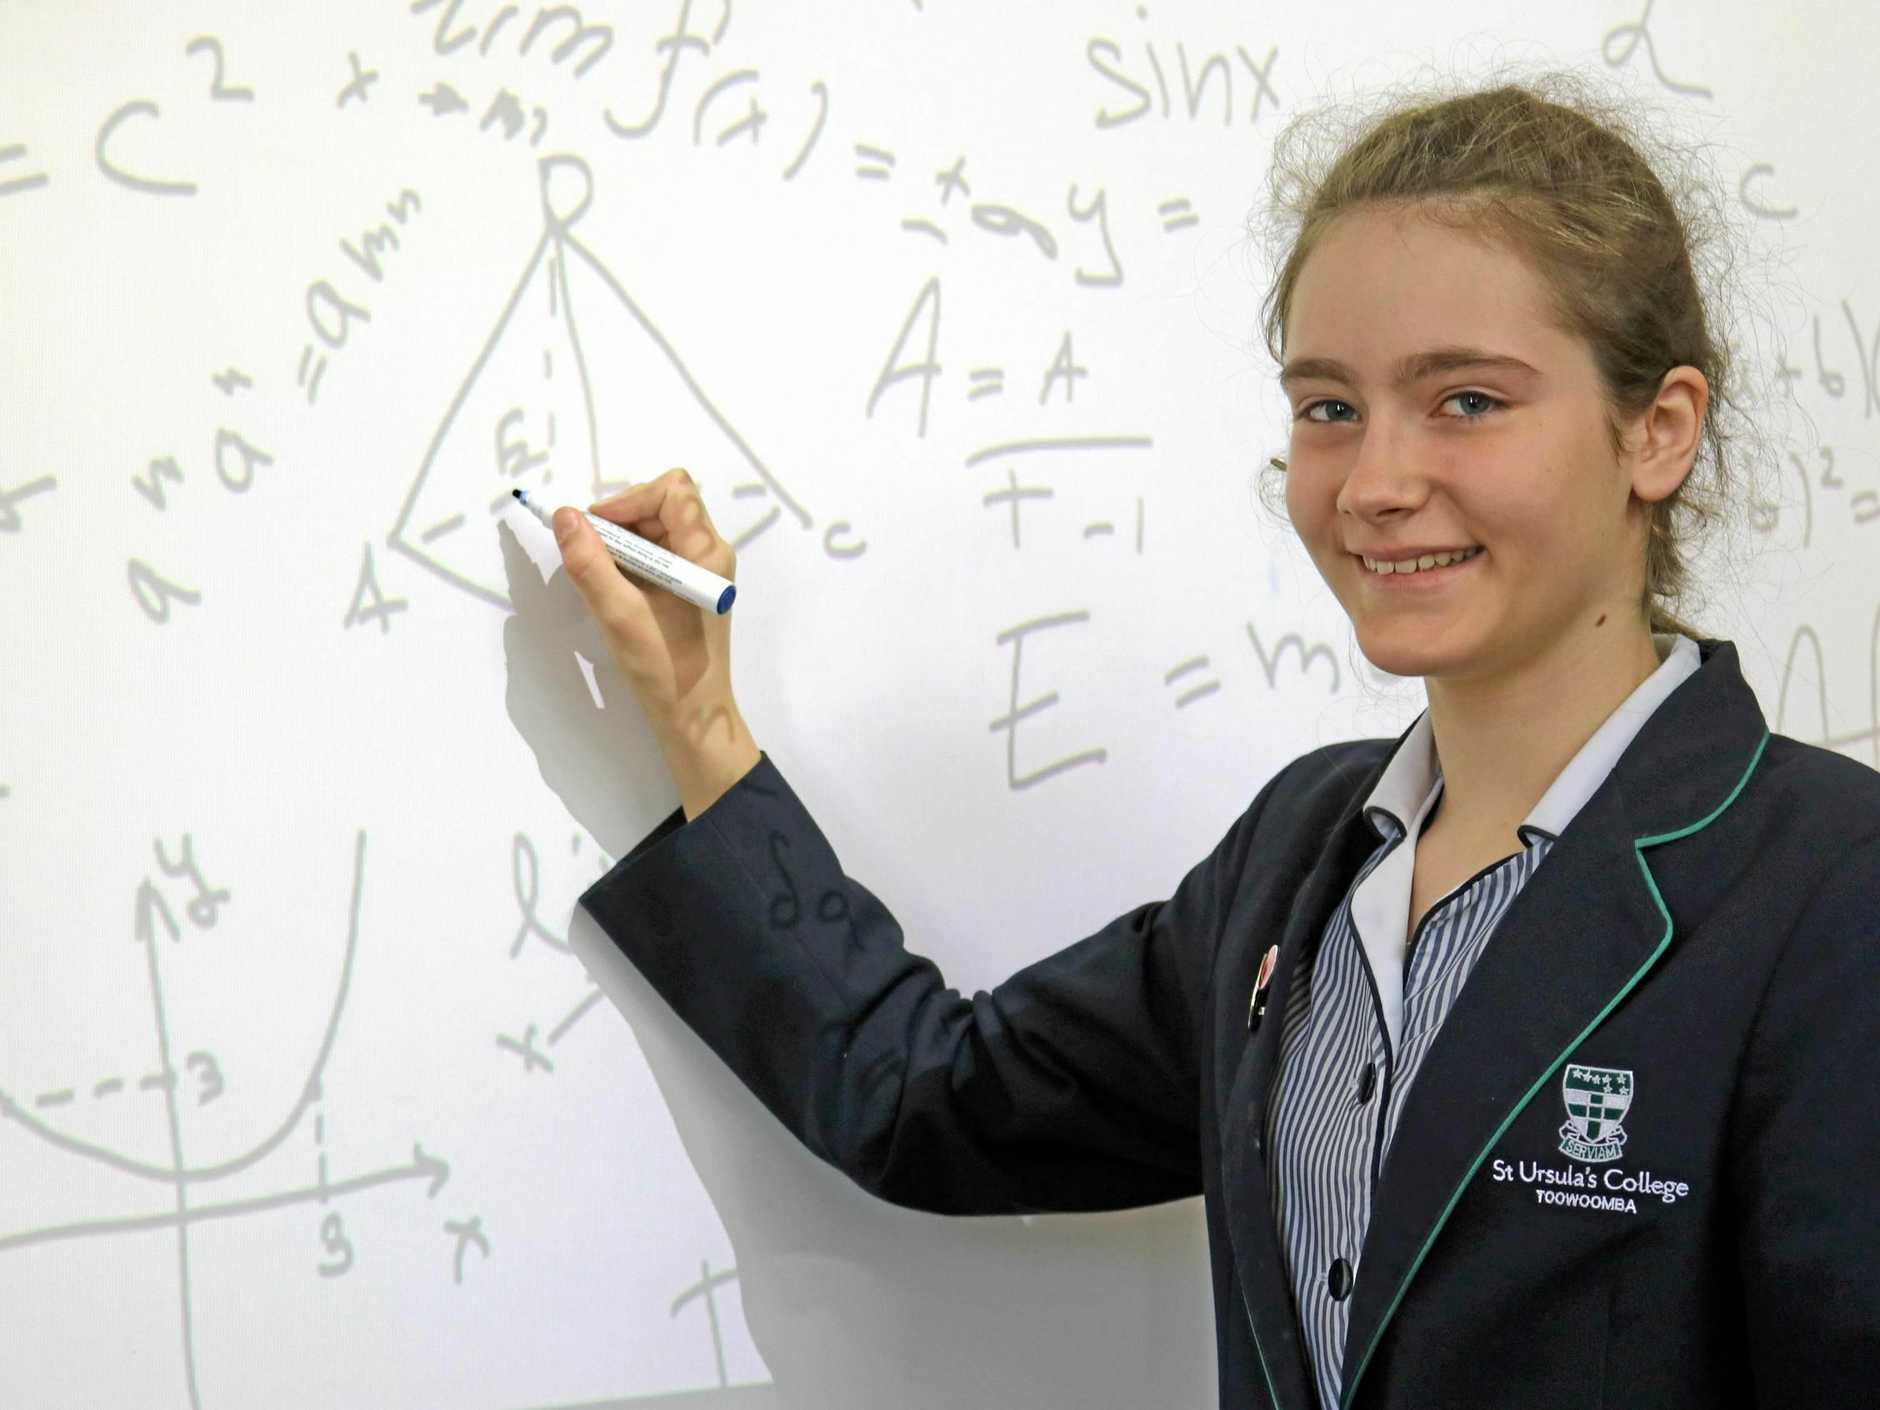 ADDING IT UP: Elizabeth Yevdokimov is completing selection testing in Melbourne for the Australian Olympiad team.